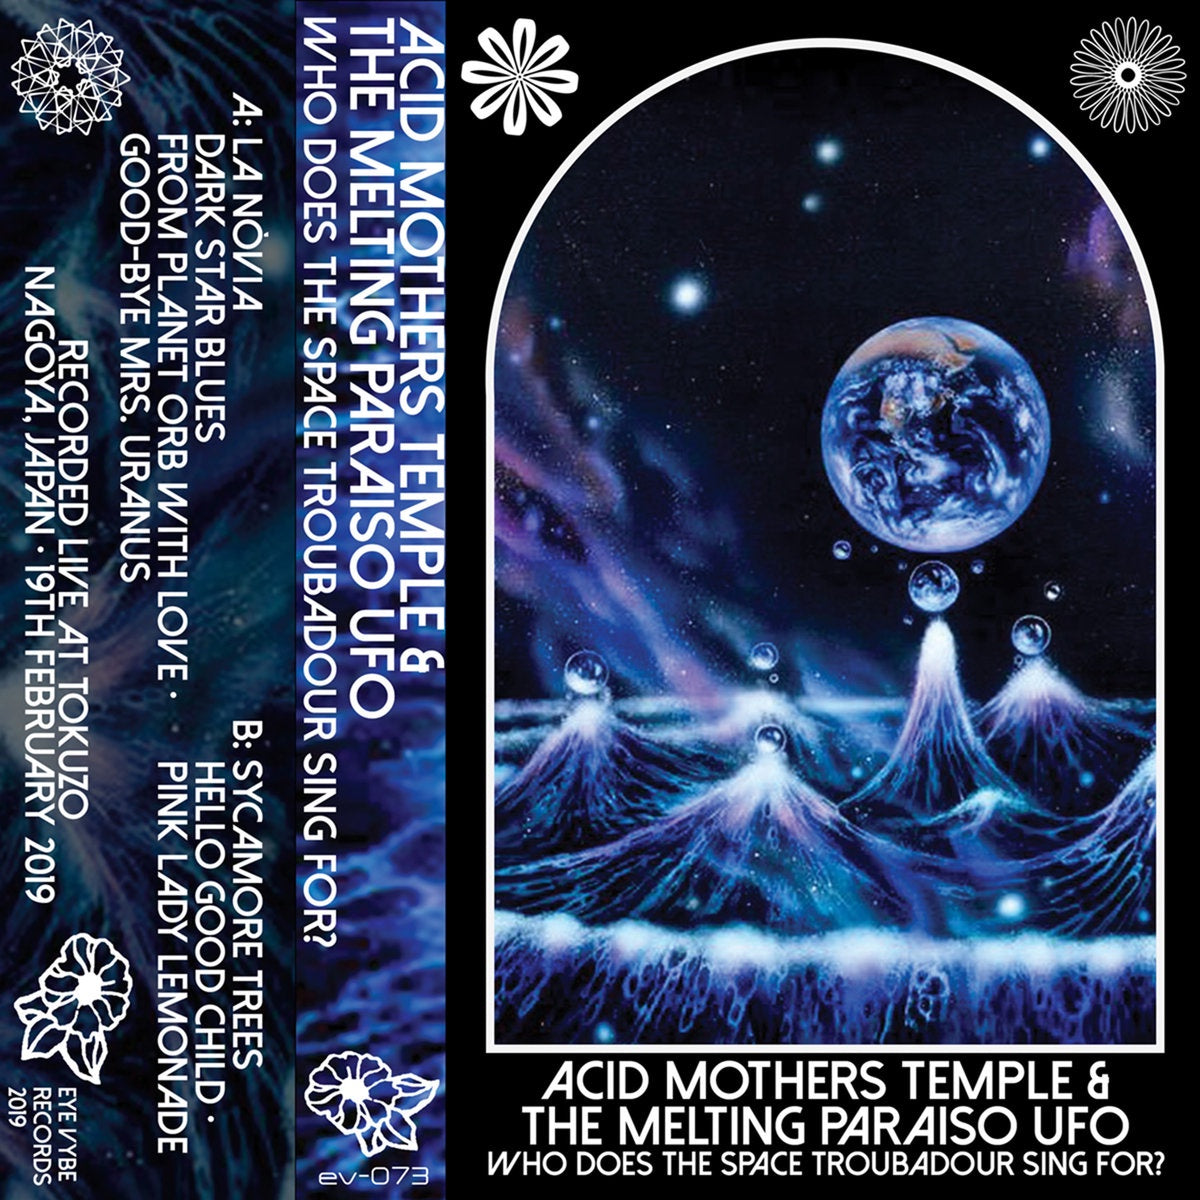 Acid Mothers Temple & The Melting Pasaiso UFO - Who Does The Space Troubadour Sing For? - New Cassette 2019 Eye Vybe Tape - Experimental / Avant Garde / Psychedelic / Space Rock